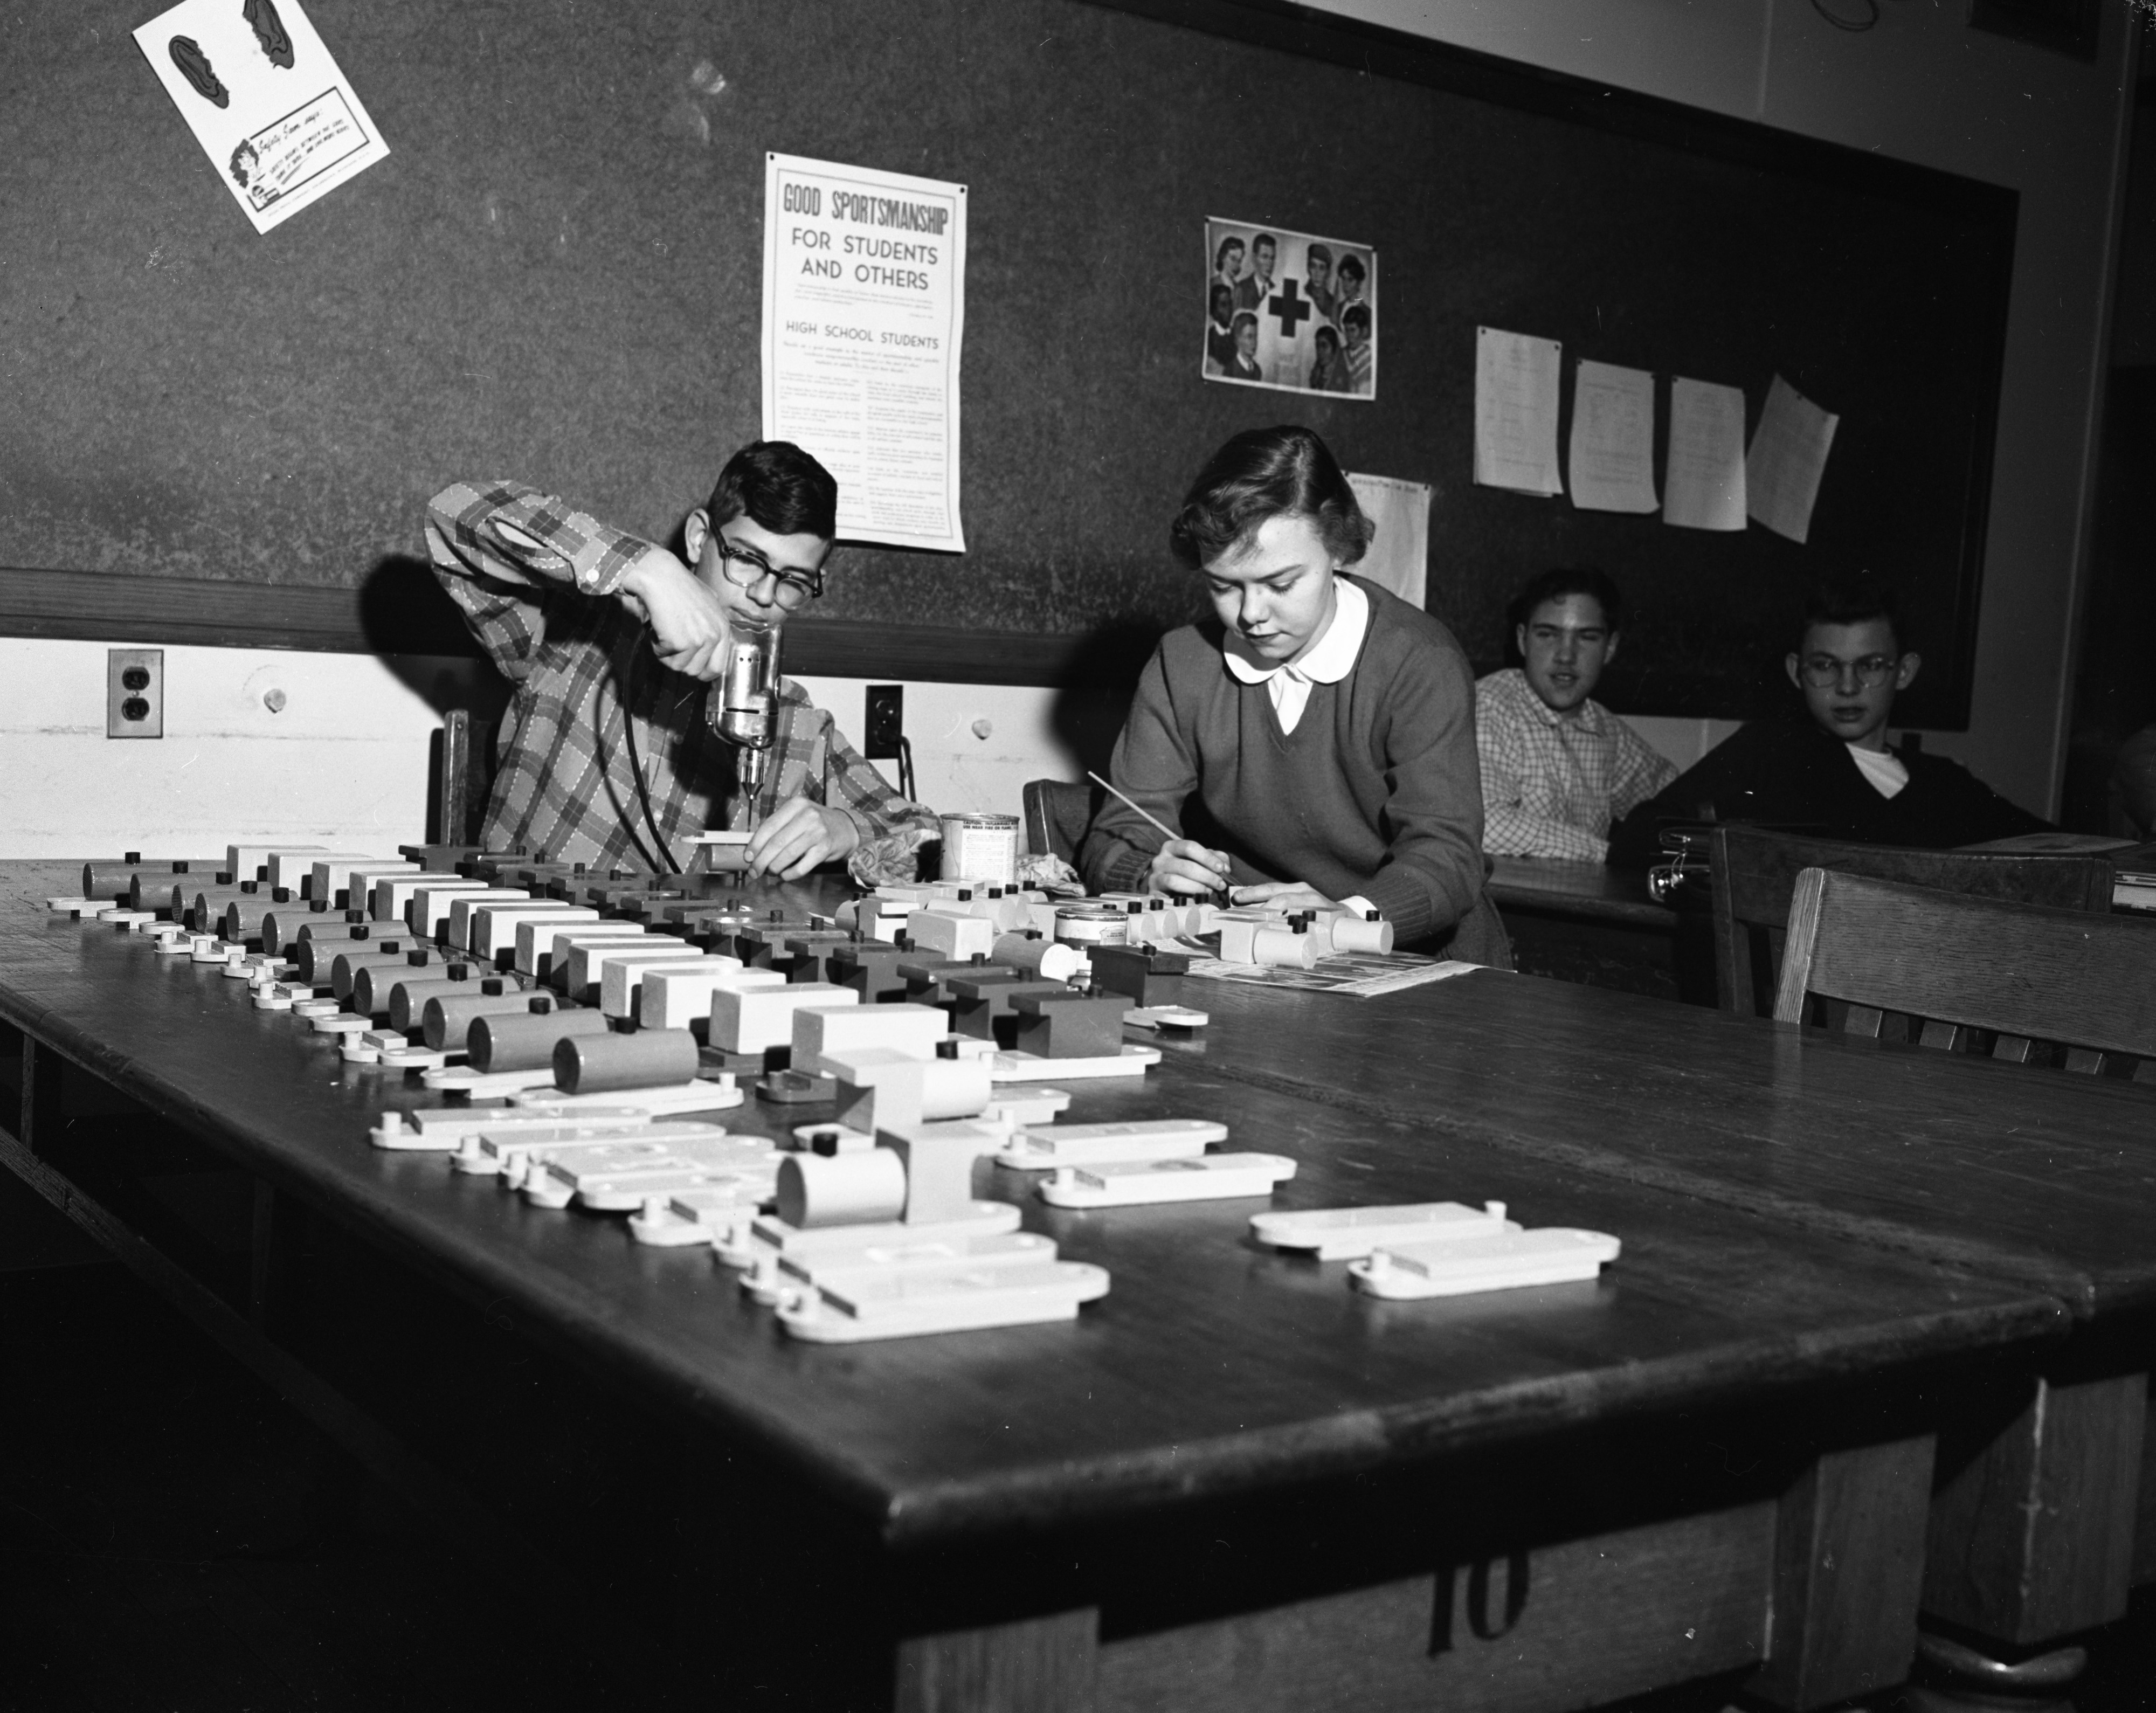 Ann Arbor High School students Dave Sattinger and Mary Kapp make toys for Salvation Army, December 1955 image